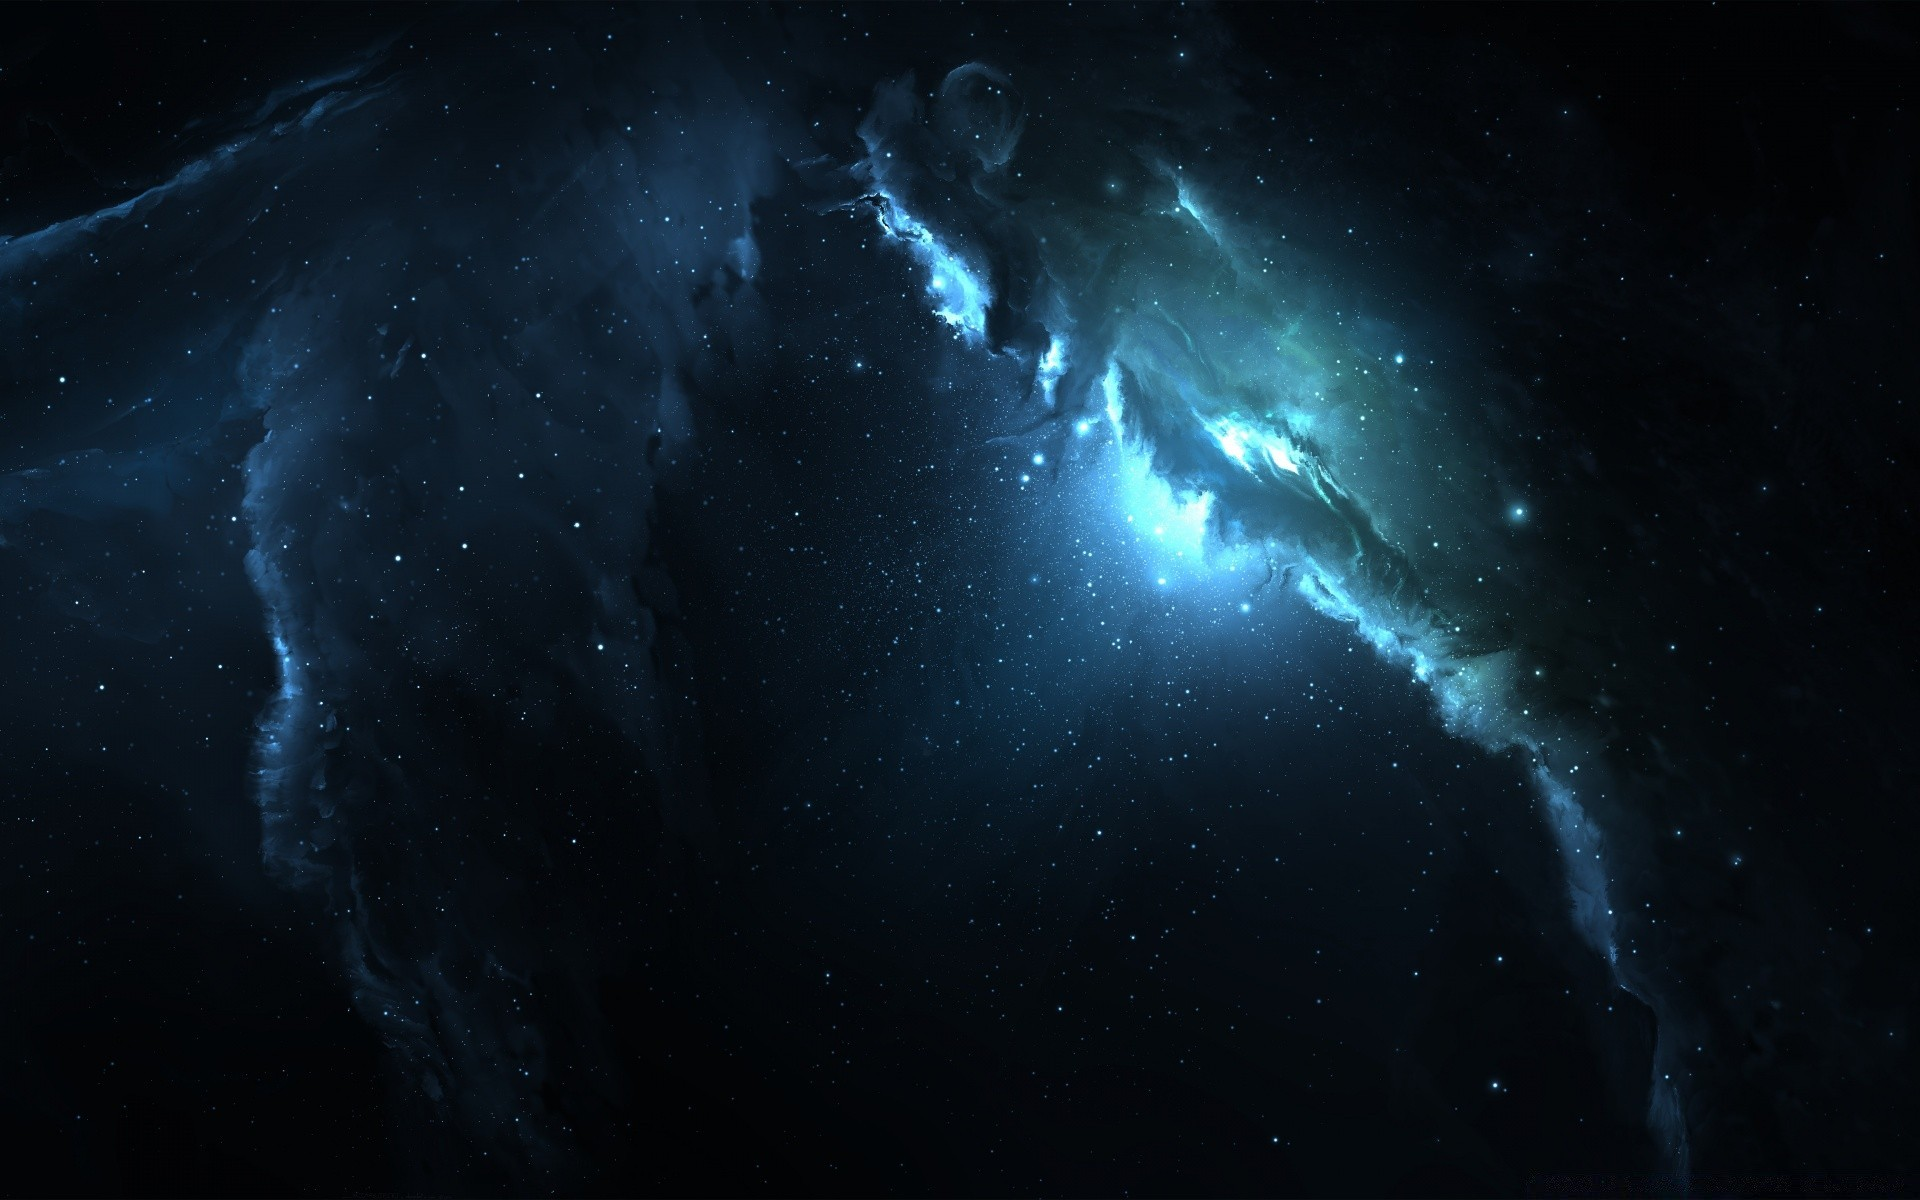 Atlantis nebula 3 dual monitor phone wallpapers - Wallpaper abyss categories ...